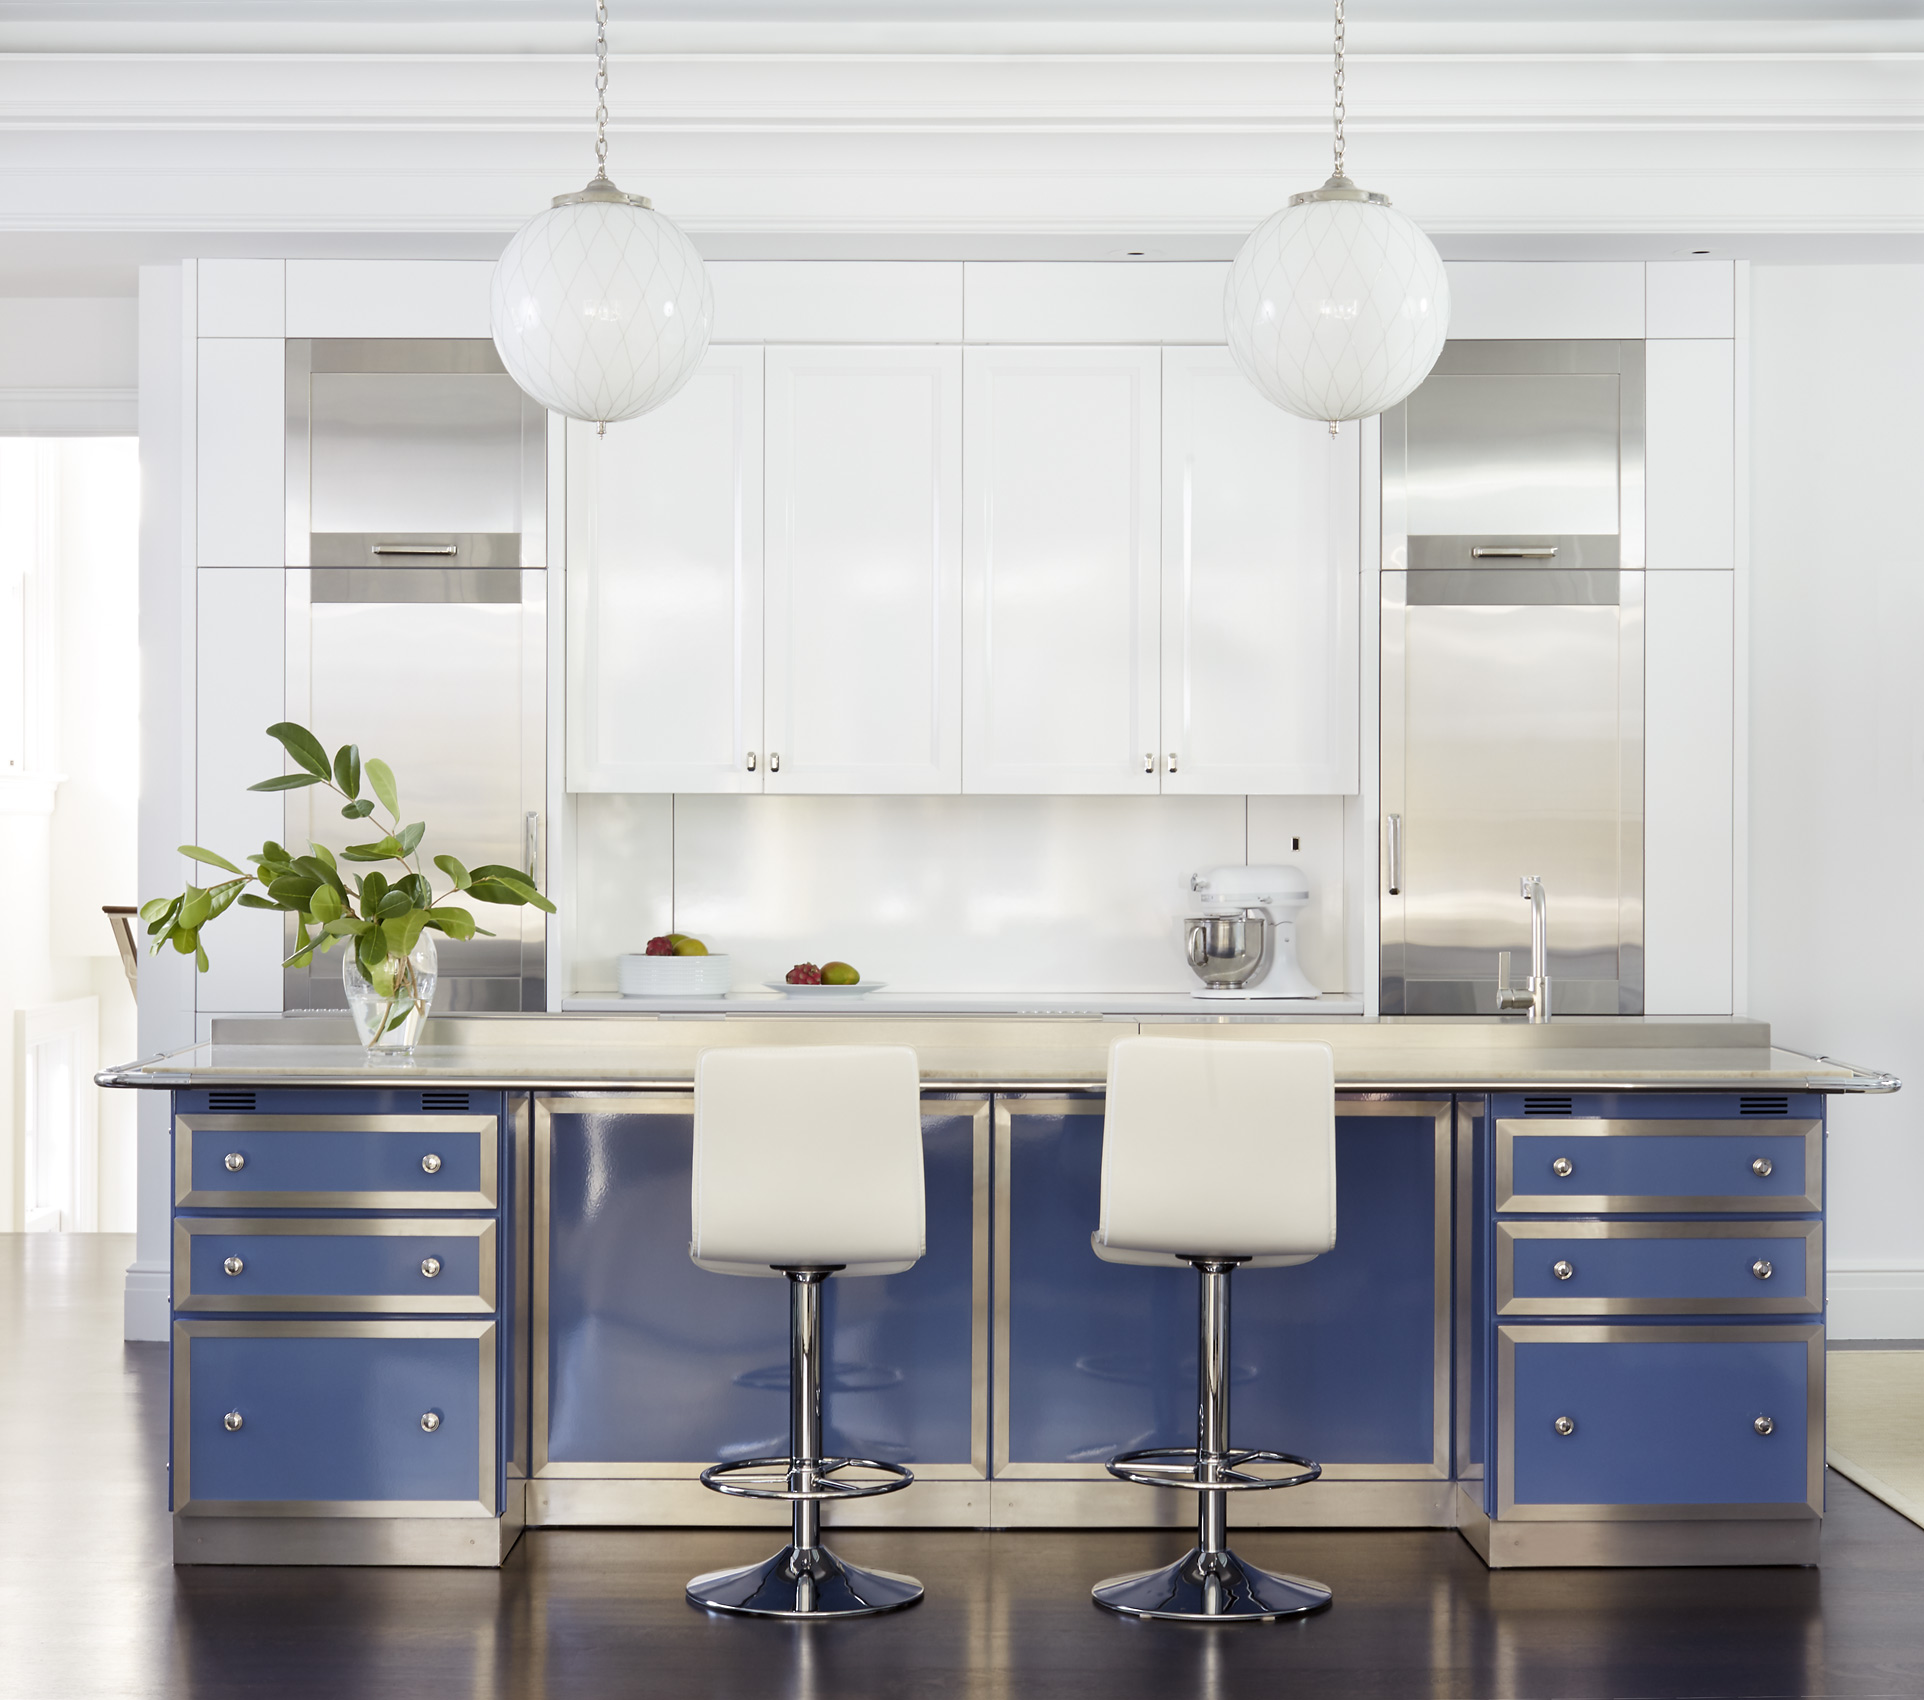 St. Charles New York kitchen design, Mali Azima photography.